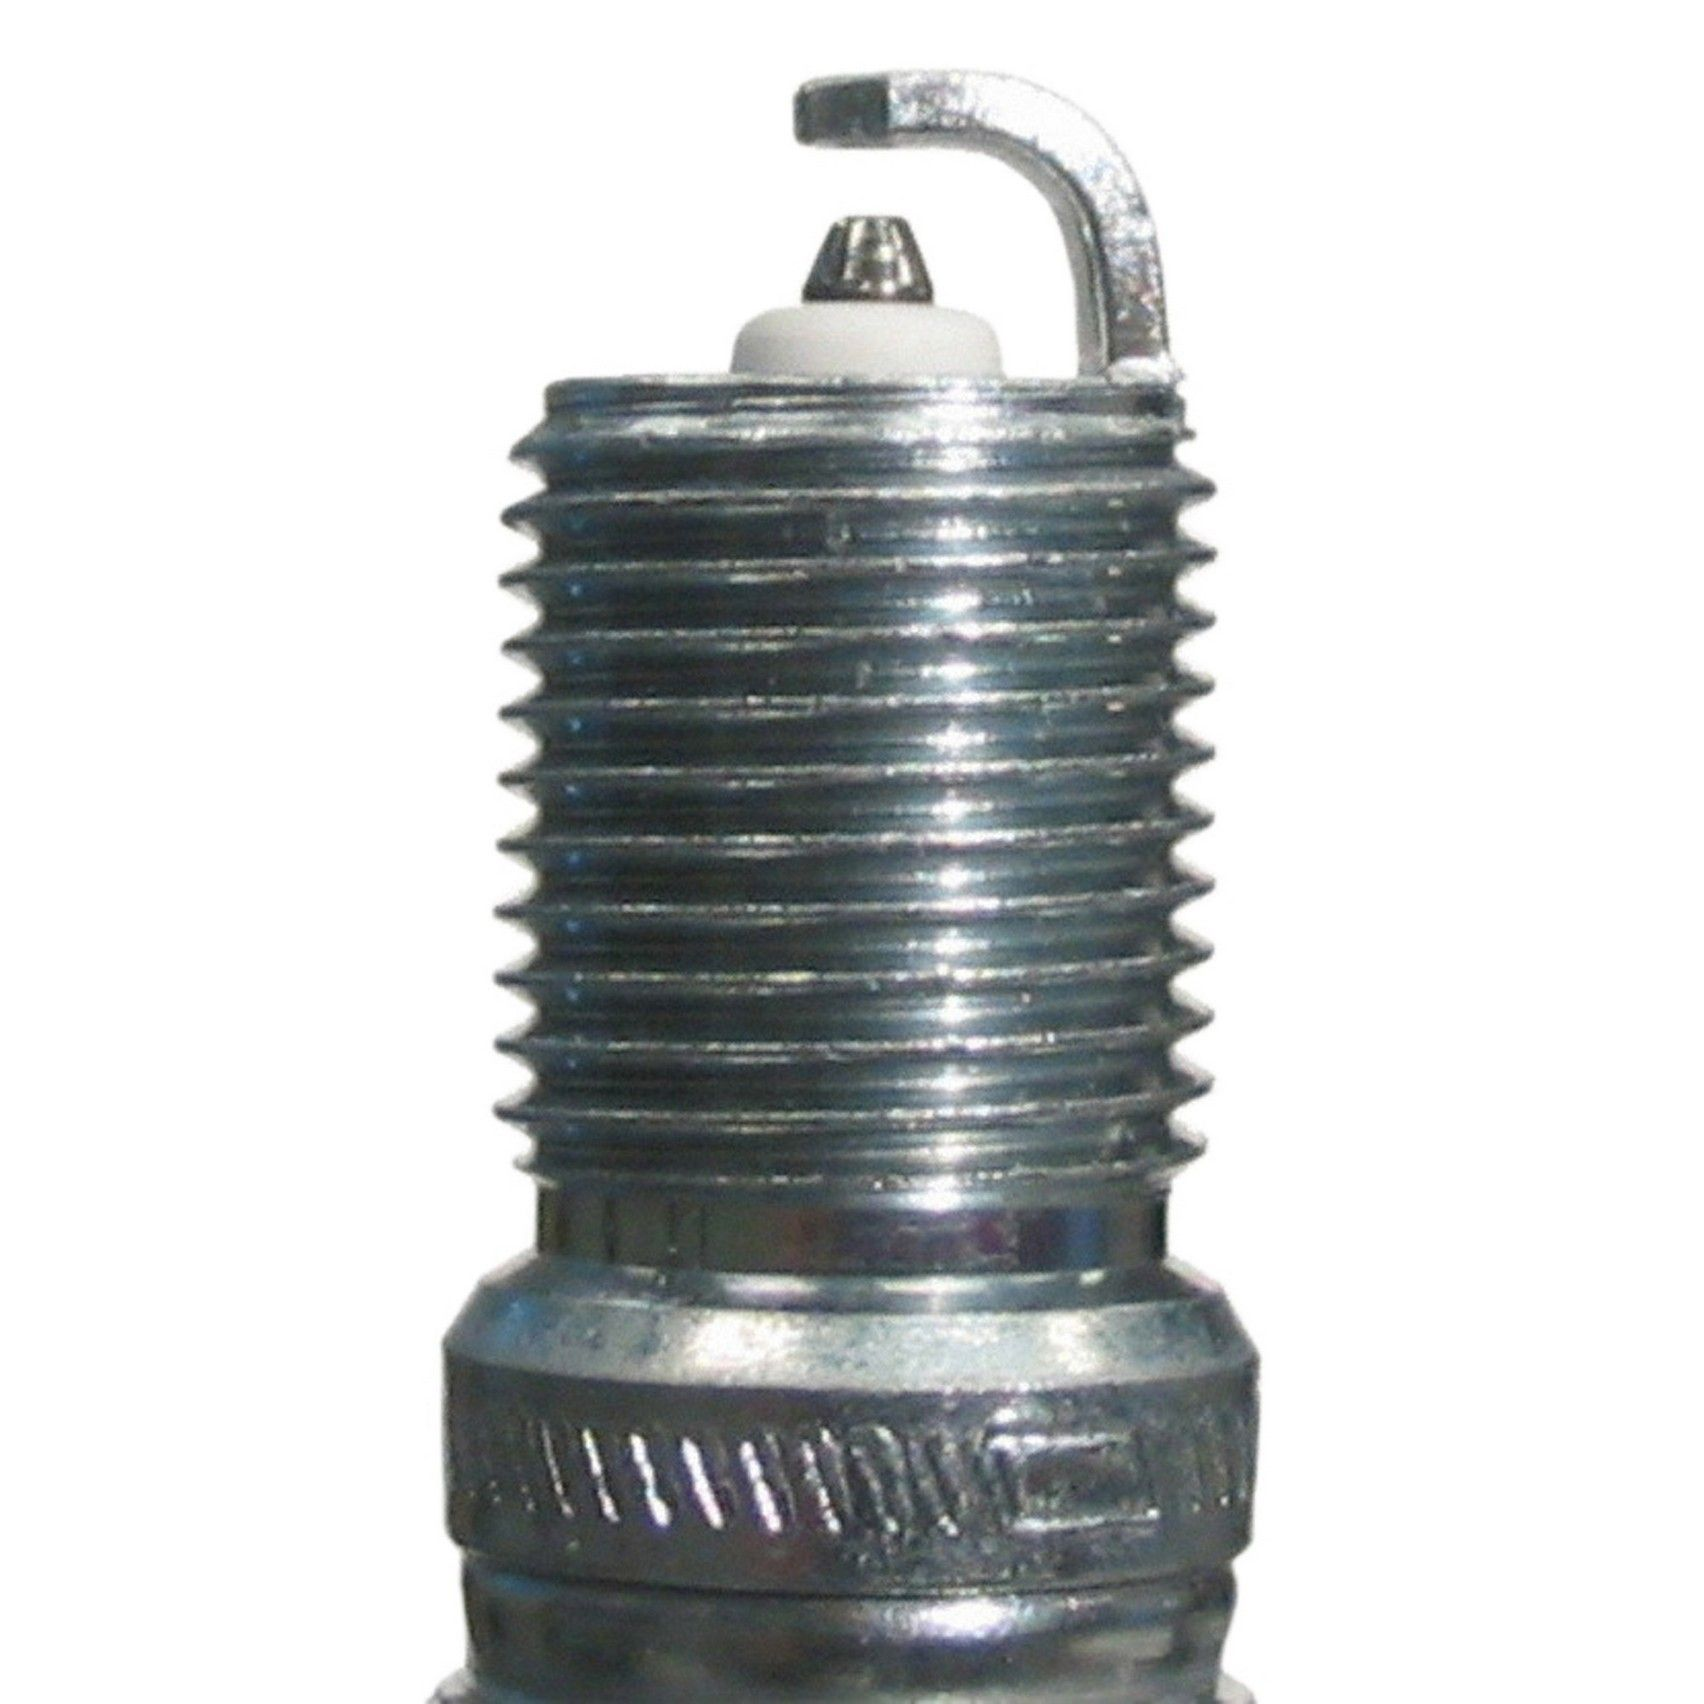 Ford Ranger Spark Plug Replacement Autolite Bosch Champion Denso Gap Settings 1990 4 Cyl 23l 7401 Type Rs10pypb5 Dual 044